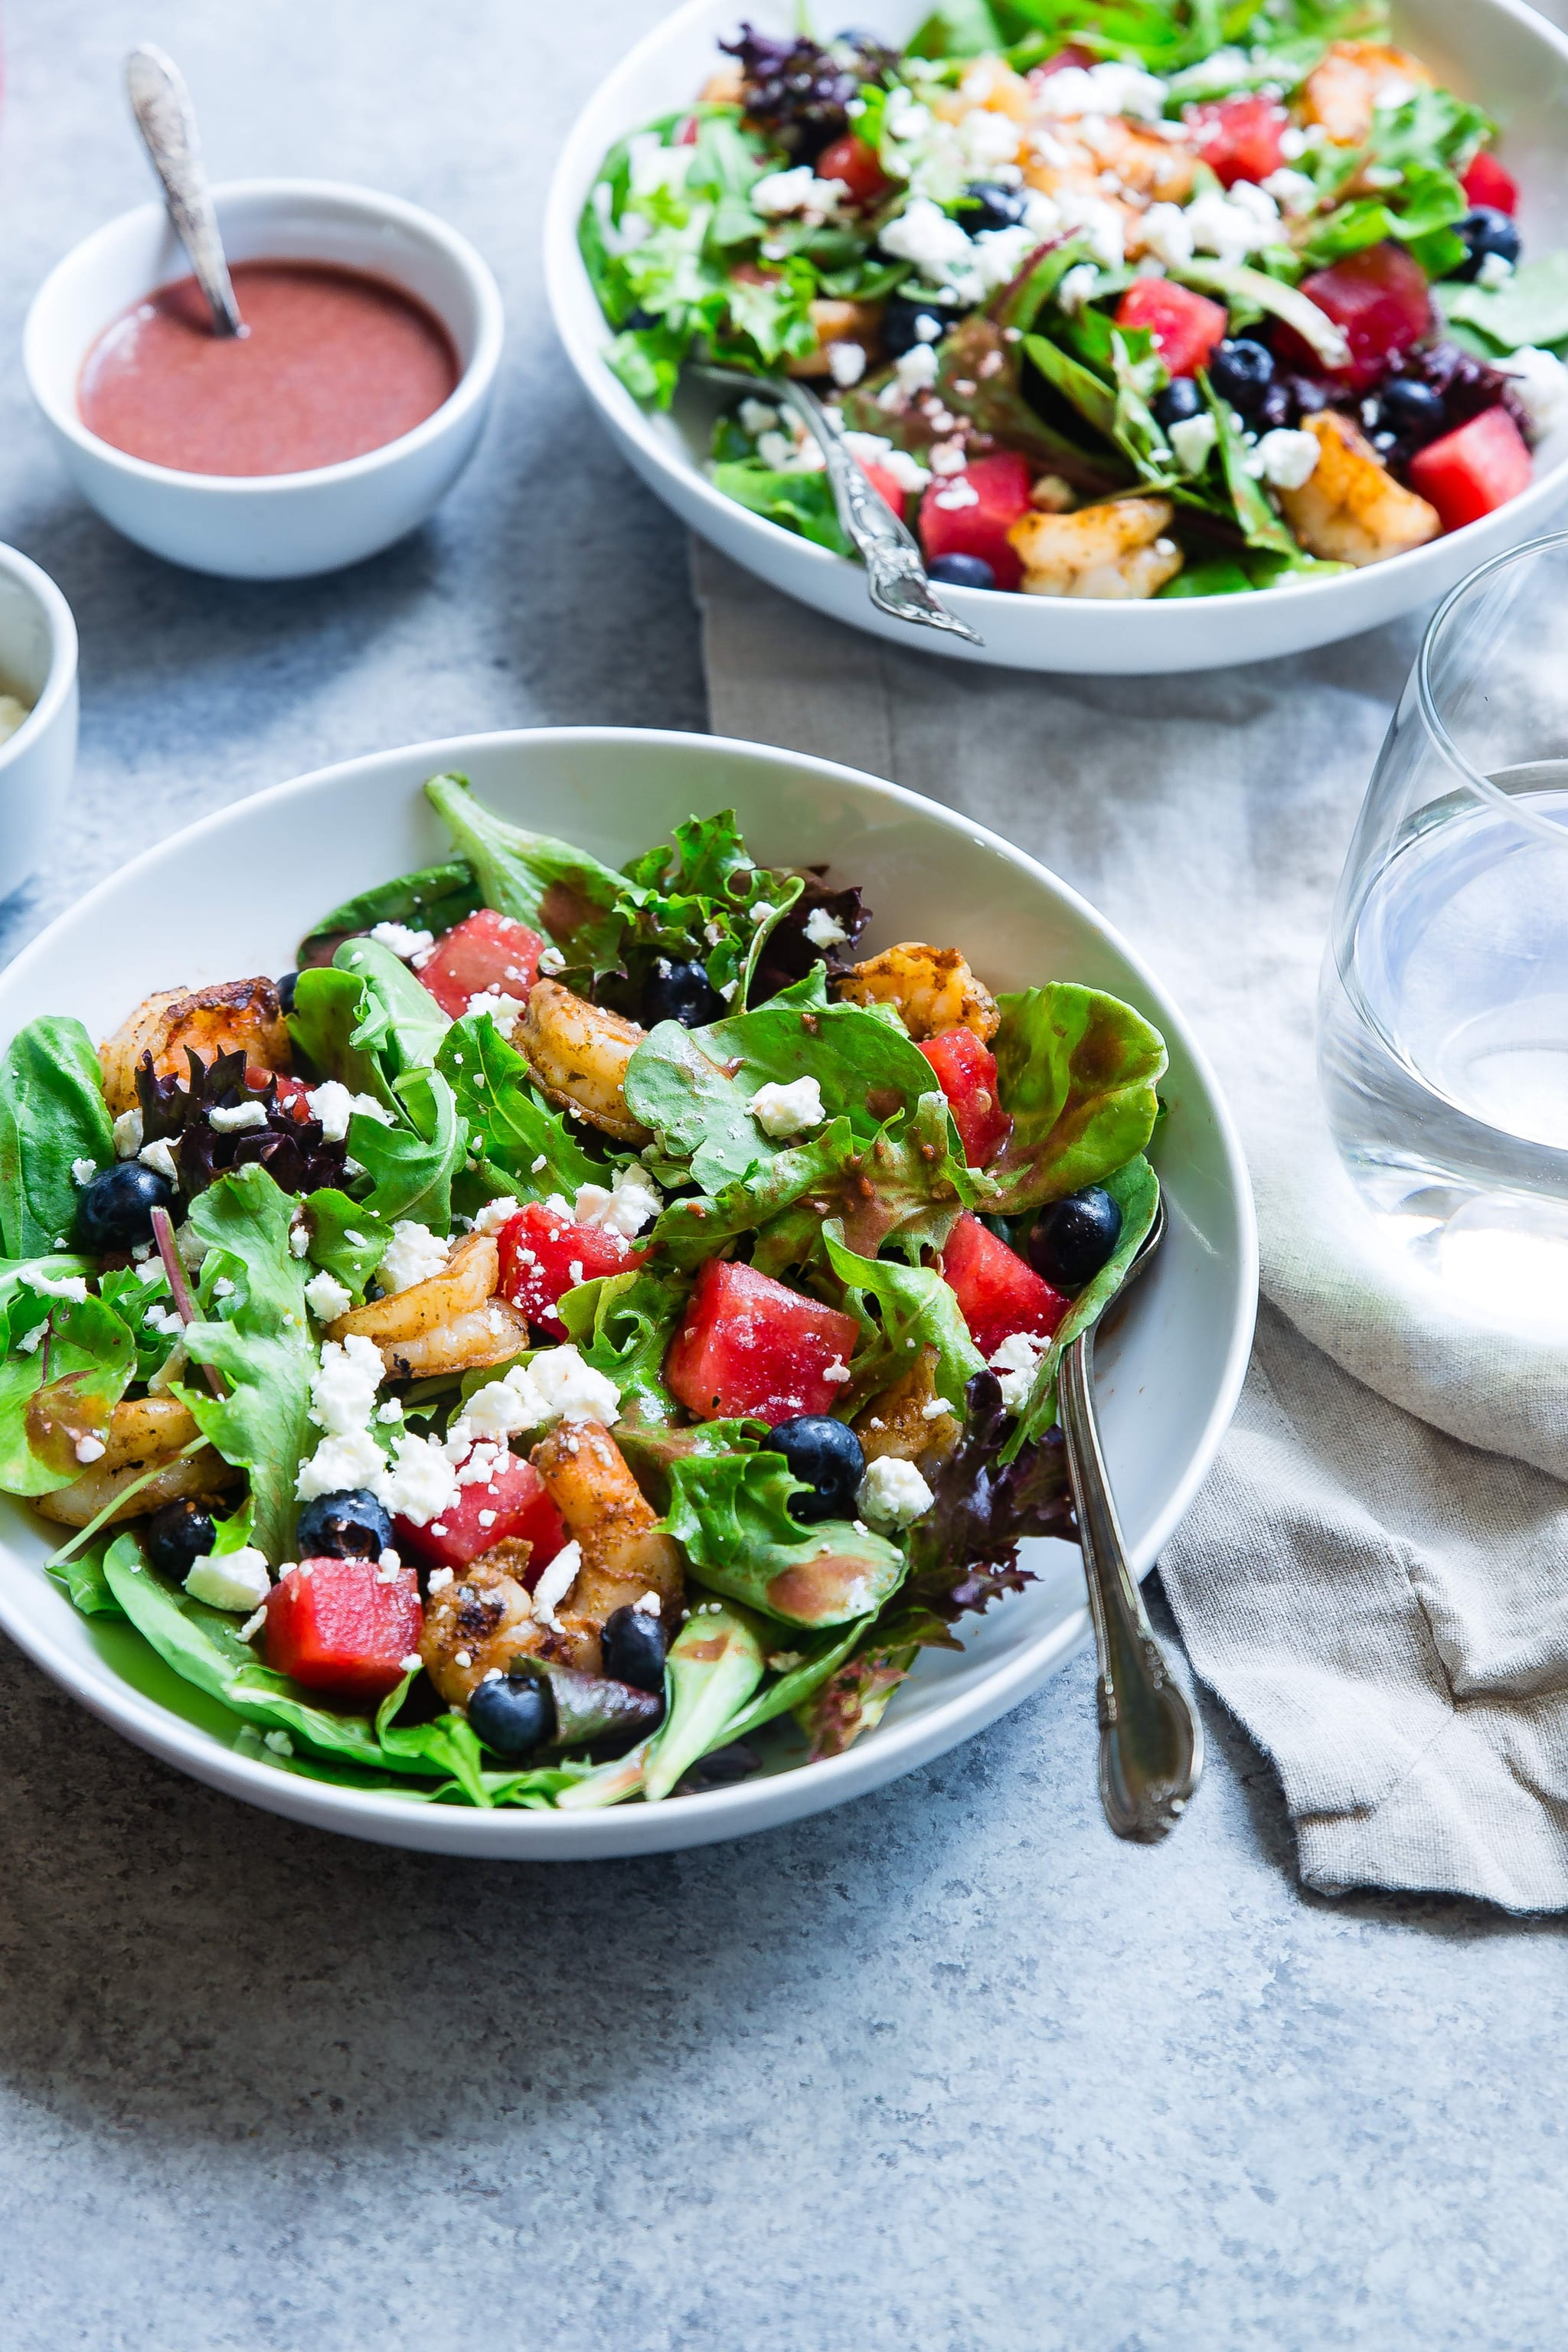 5 Lightened-Up Salad Dressings to Keep You on Your Weight-Loss Game